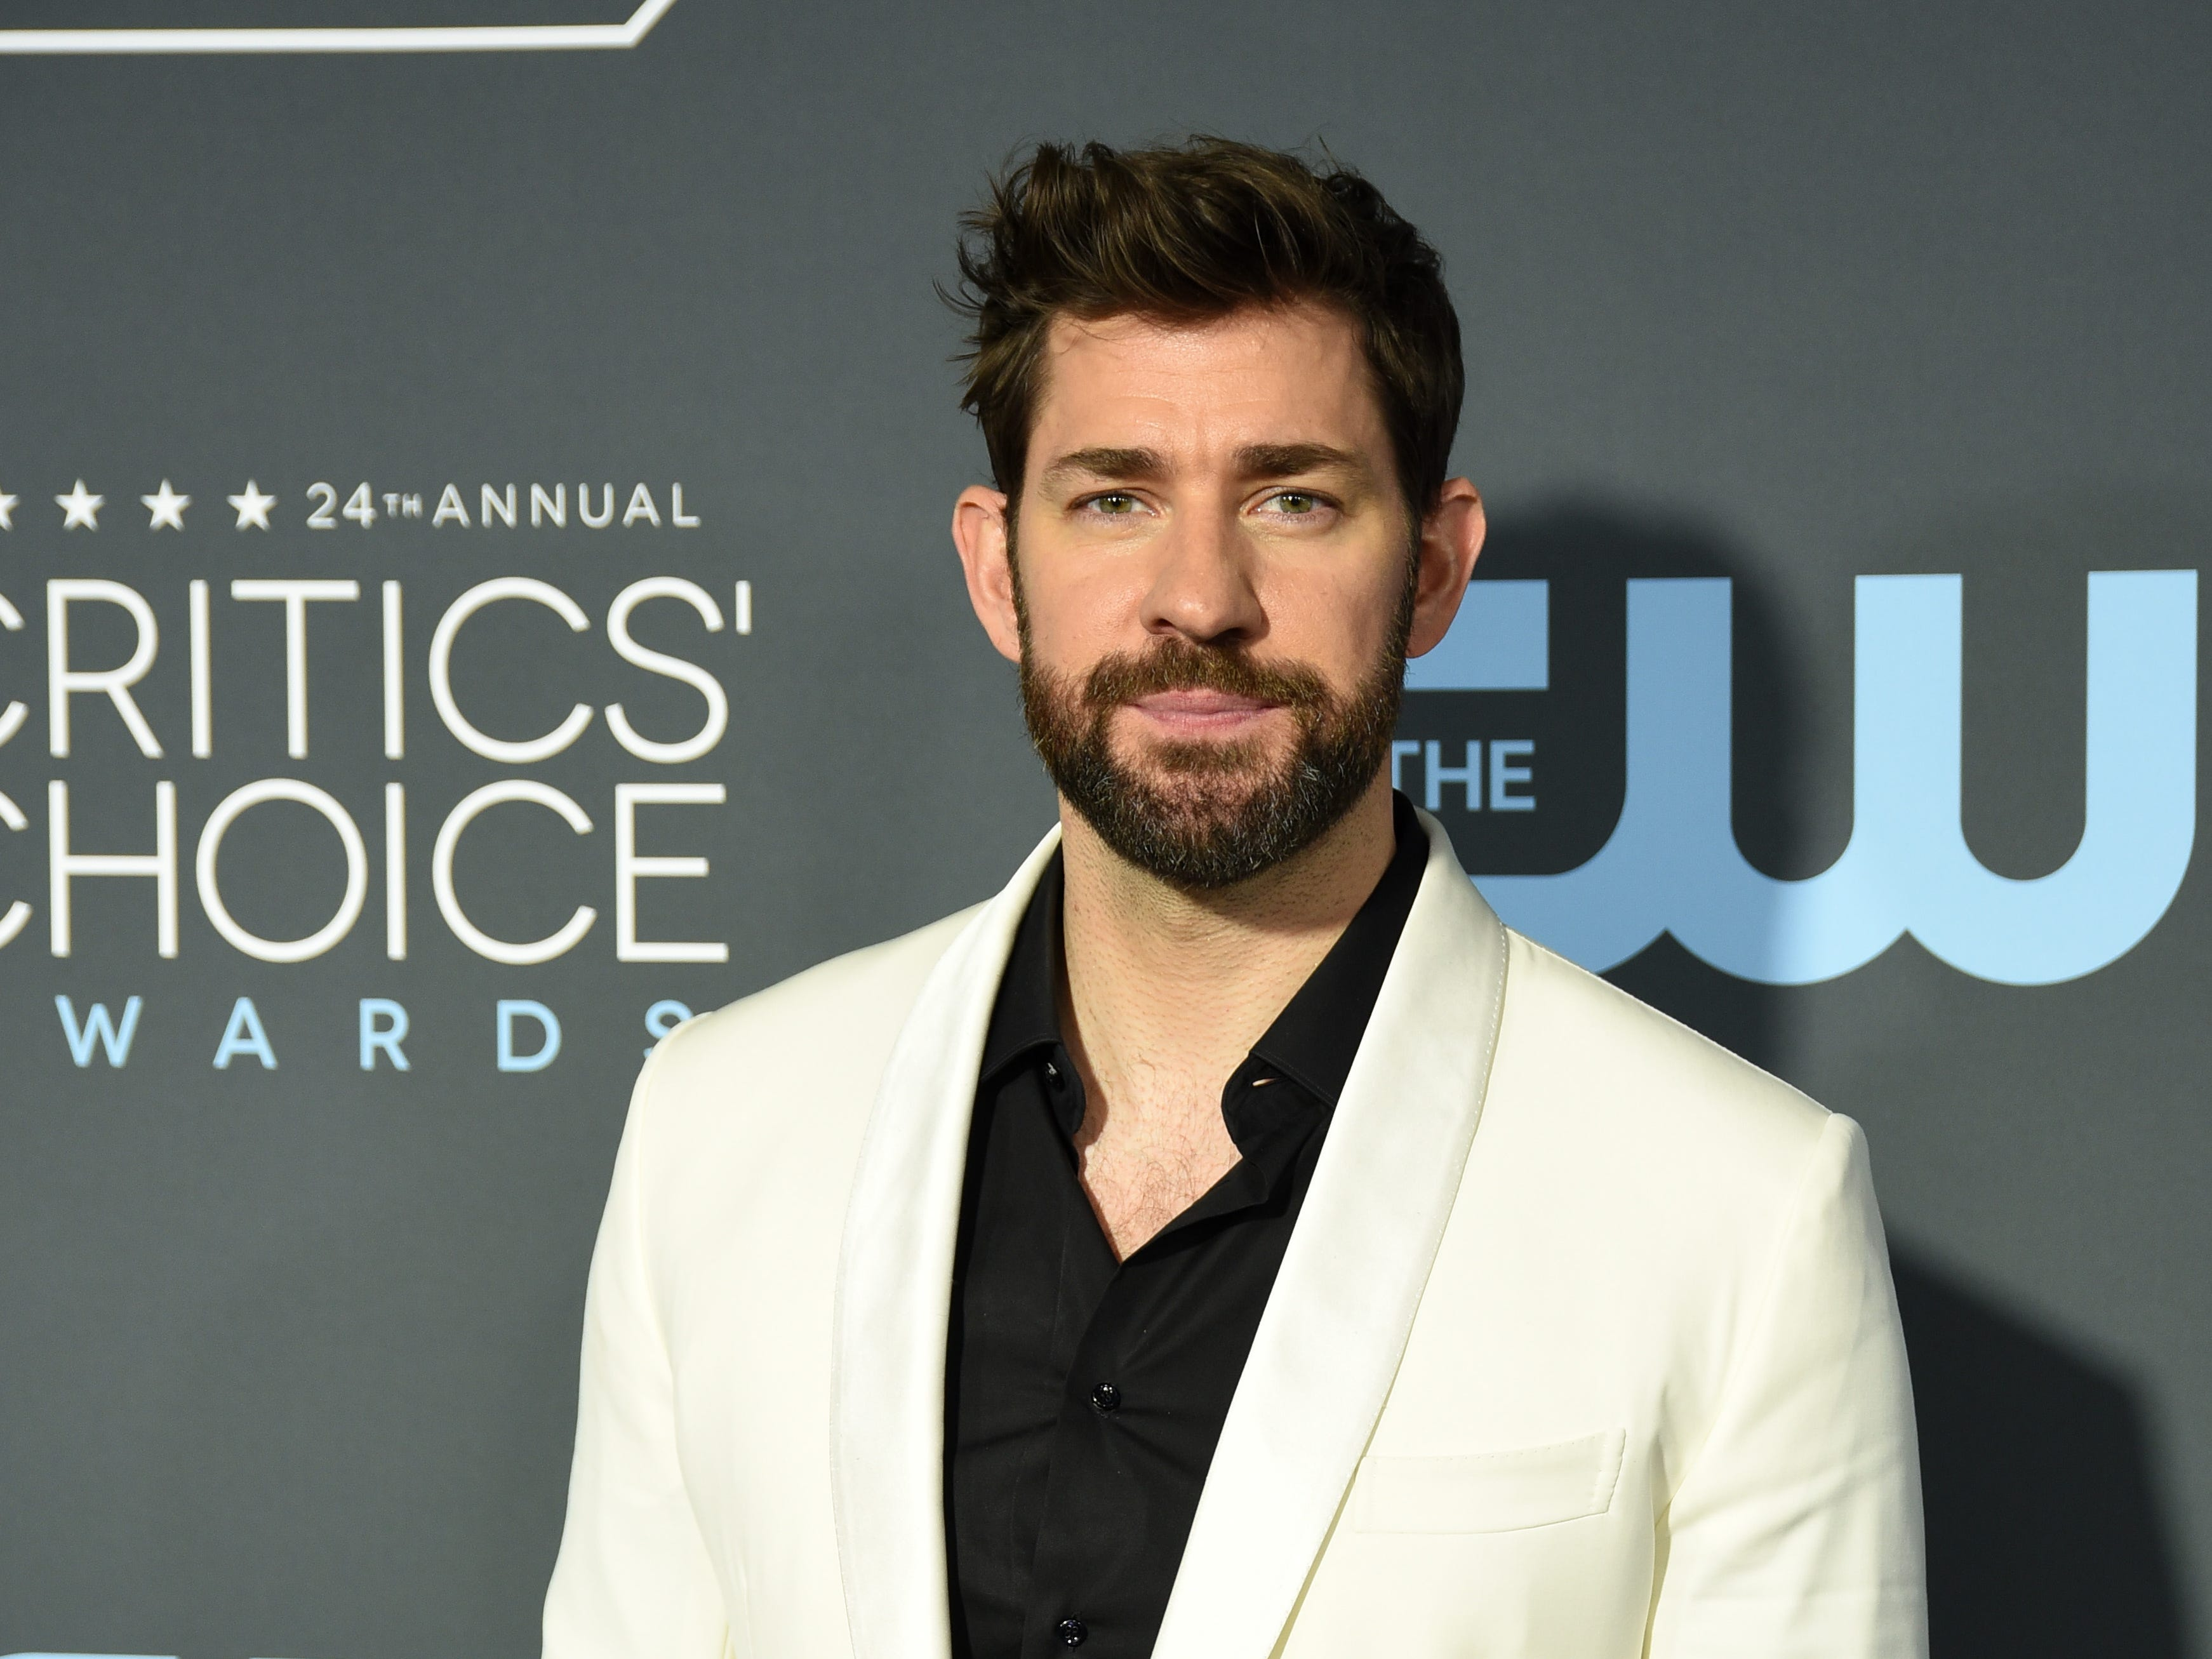 SANTA MONICA, CALIFORNIA - JANUARY 13: John Krasinski at The 24th Annual Critics' Choice Awards at Barker Hangar on January 13, 2019 in Santa Monica, California. (Photo by Presley Ann/FilmMagic) ORG XMIT: 775260313 ORIG FILE ID: 1093766152